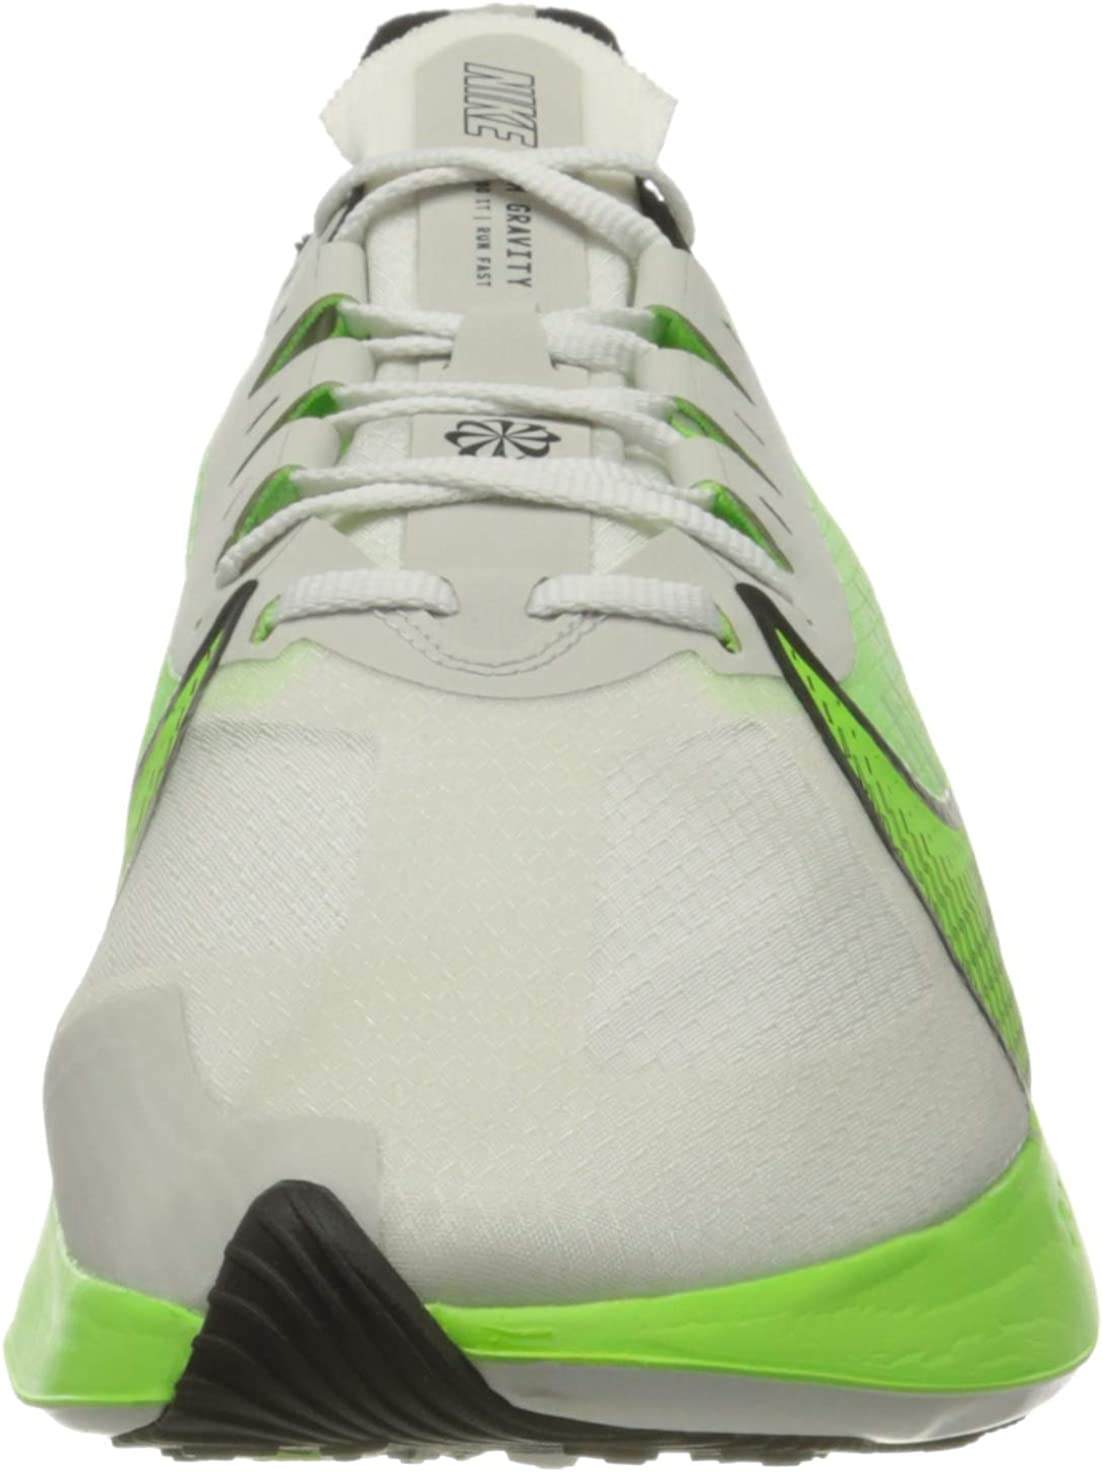 NIKE Zoom Gravity, Zapatillas de Entrenamiento para Hombre Gris Platinum Tint Electric Green Black White 003